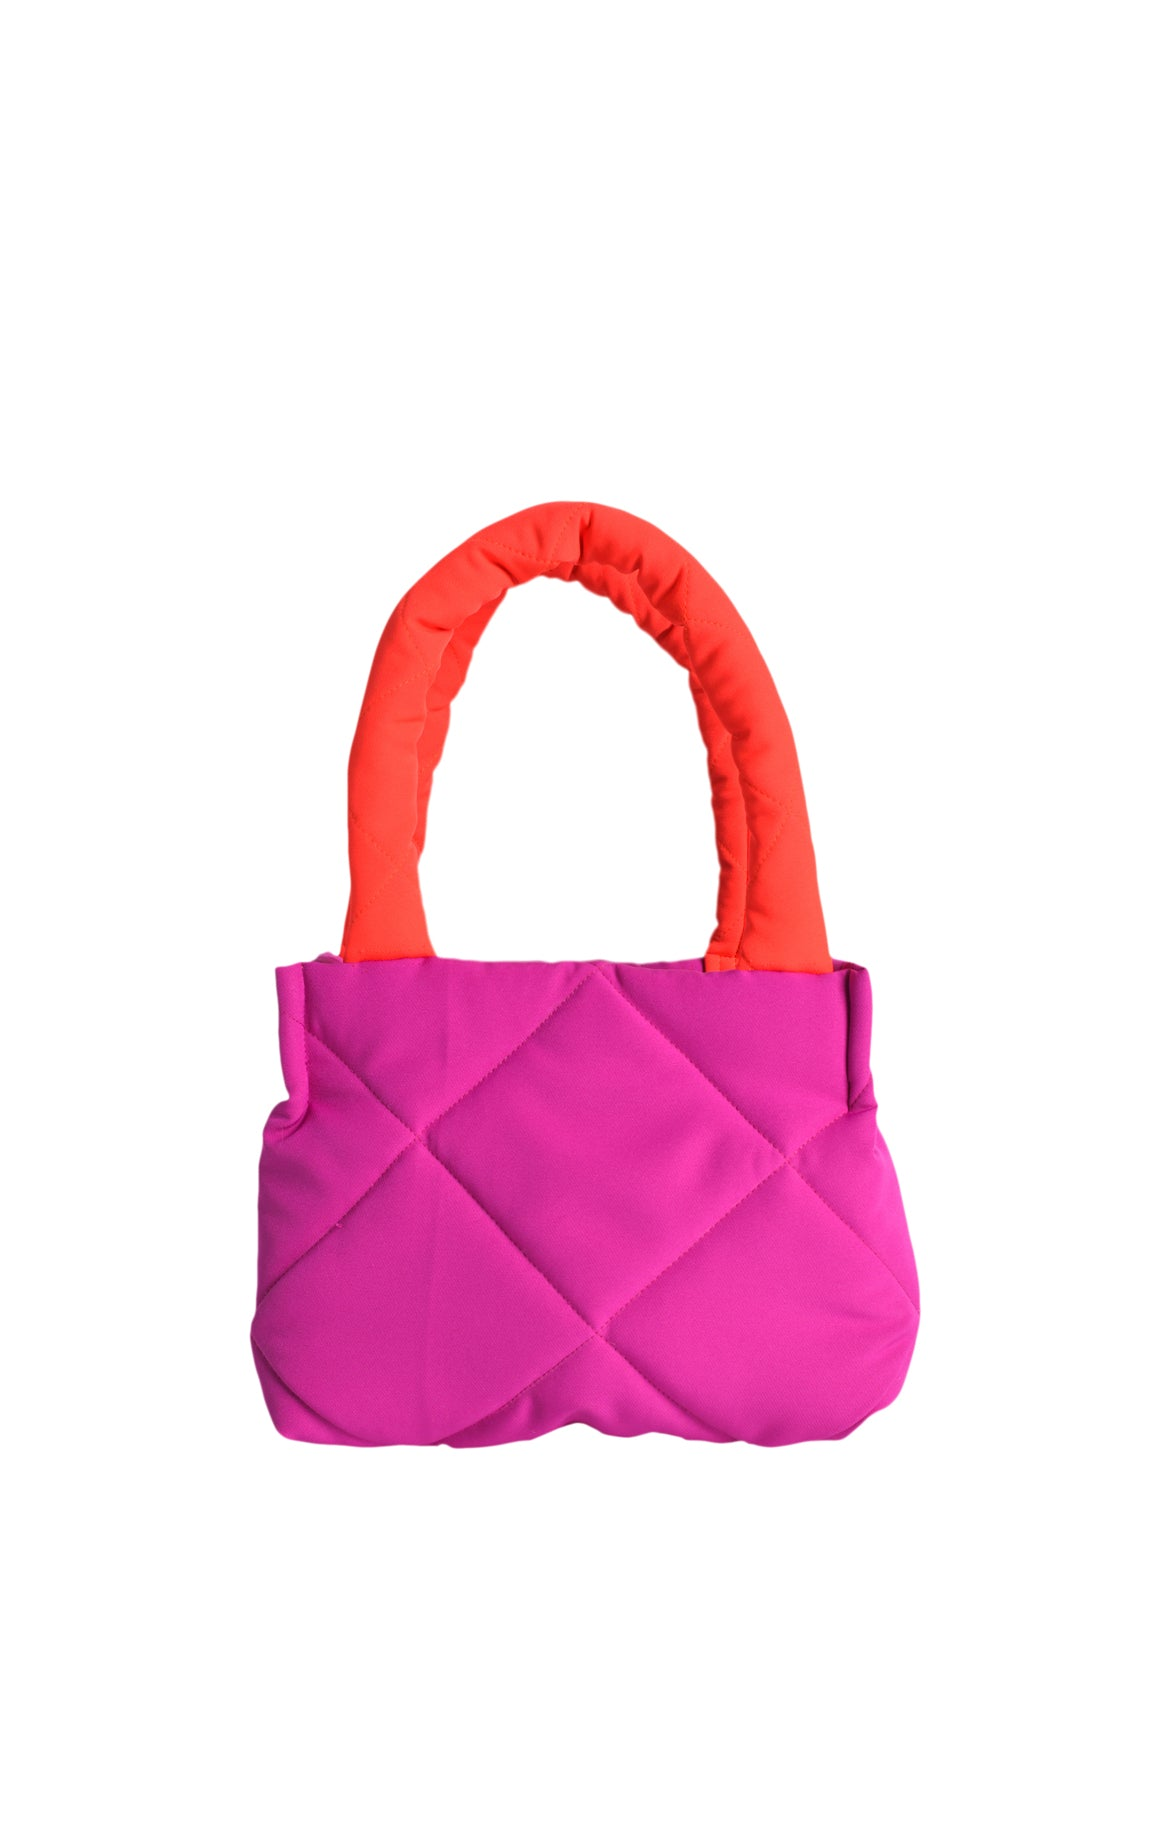 Margaret Quilted Handbag